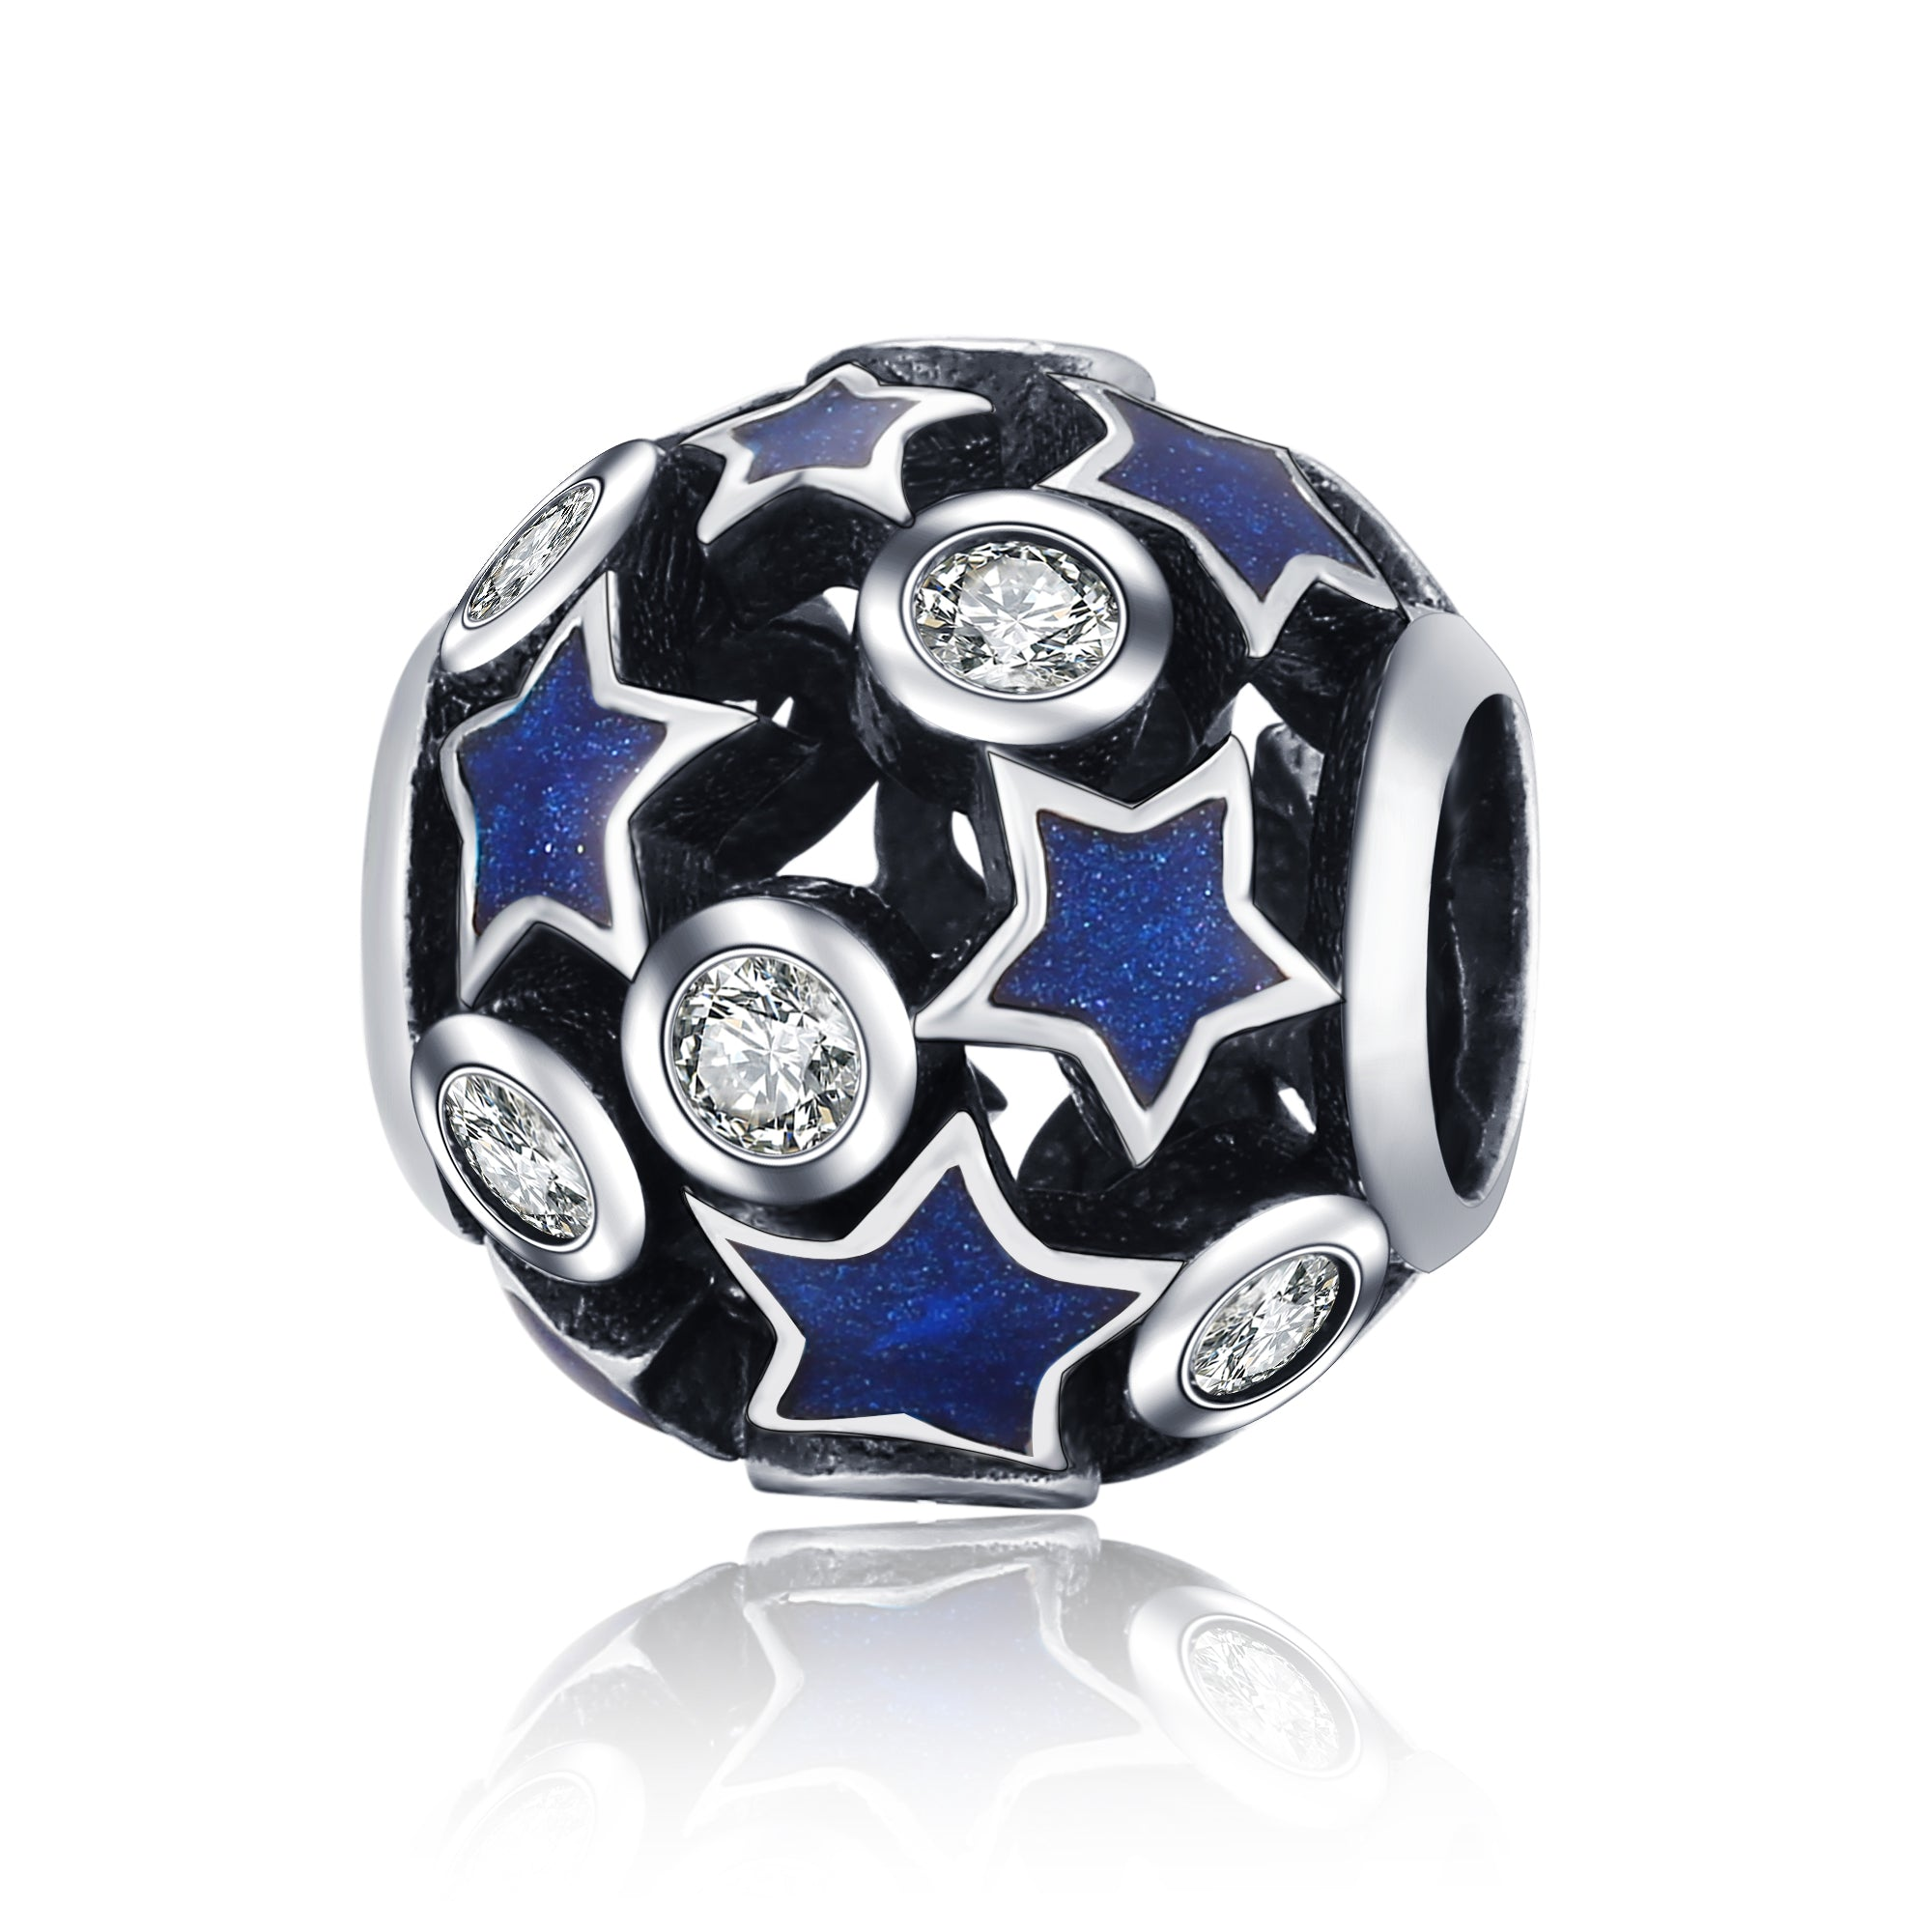 Vintage Night Sky Beads Charm Shimmering Midnight Blue Enamel Beads